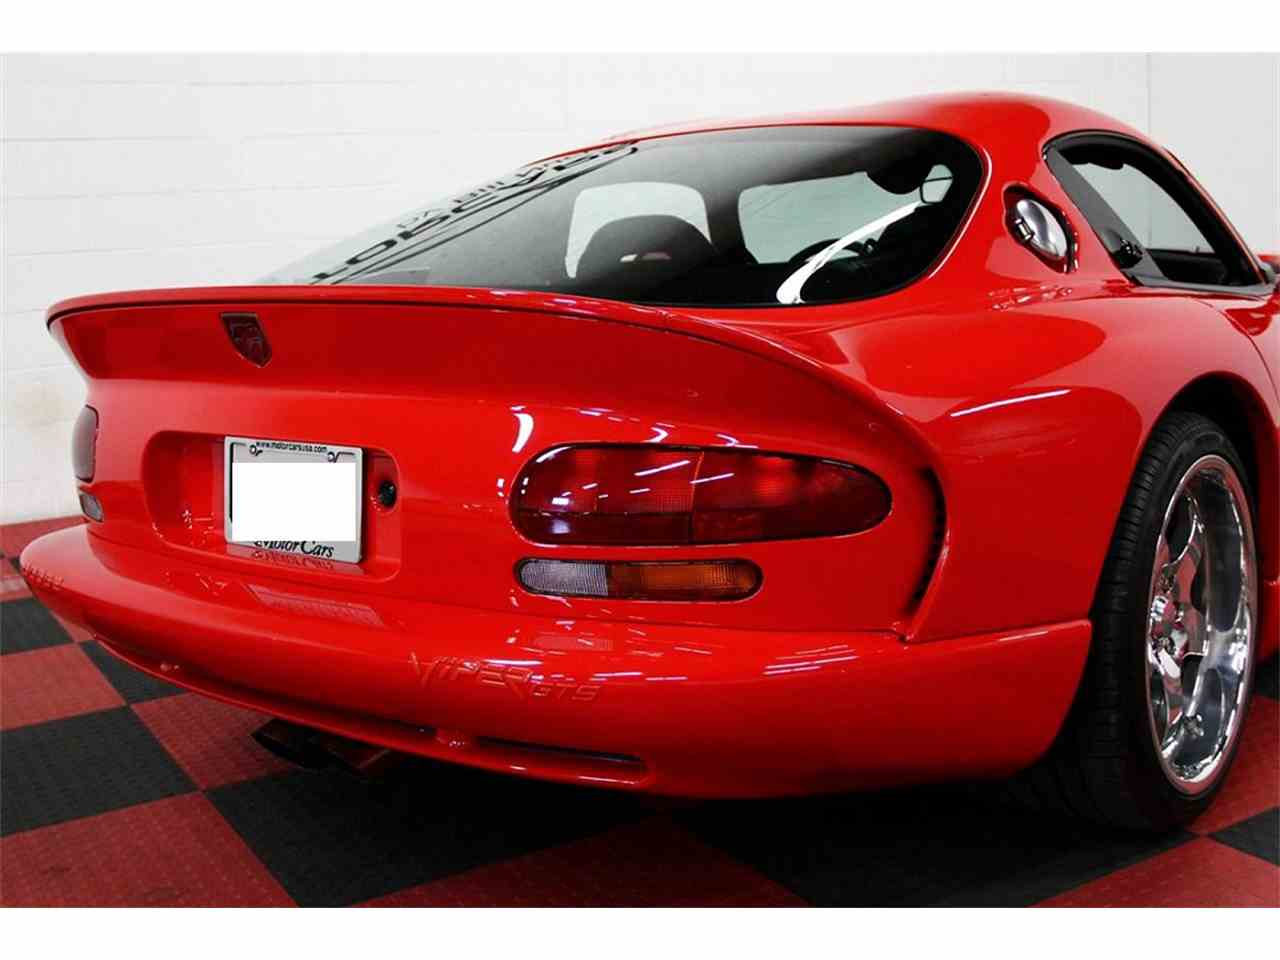 Large Picture of 1998 Dodge Viper located in Illinois - $49,000.00 Offered by a Private Seller - LSFT